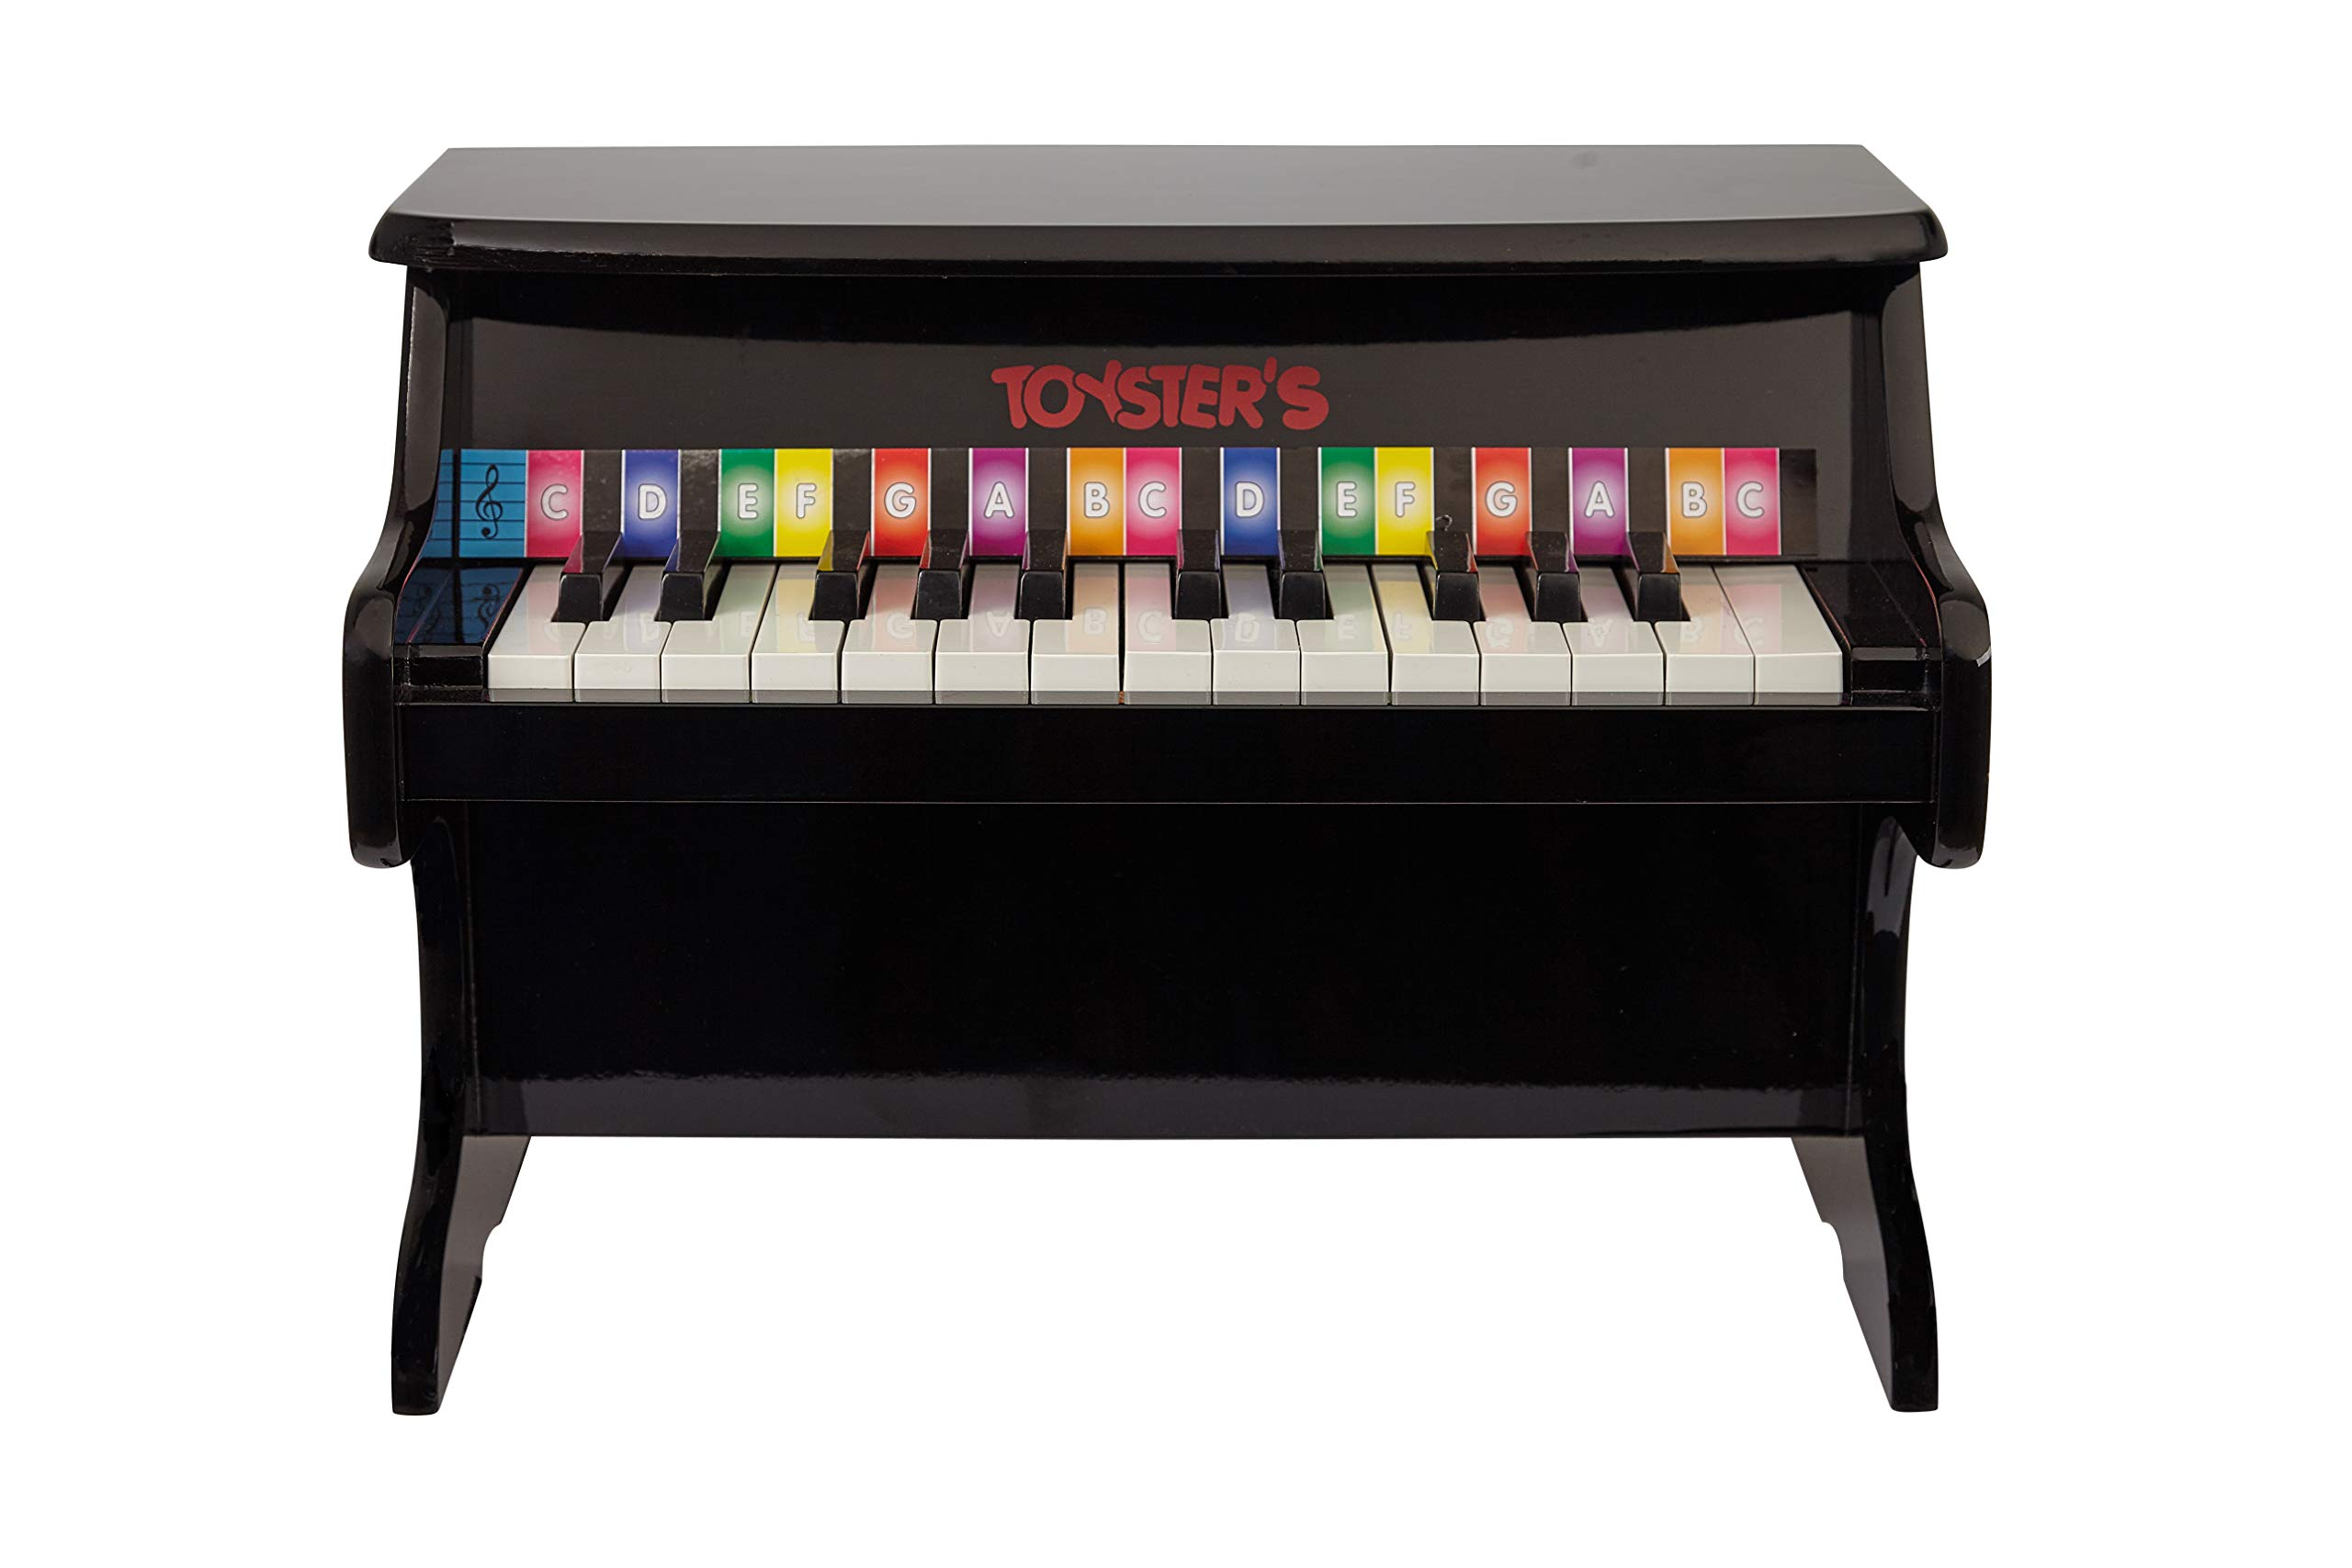 Toysters Toddler Piano Keyboard Toy   Fun Educational Learning Toys   Wonderful Kids Birthday Gift   Musical Toy with 25 Keys and Colorful Song Book   Help Children Discover Their Love of Music MU935